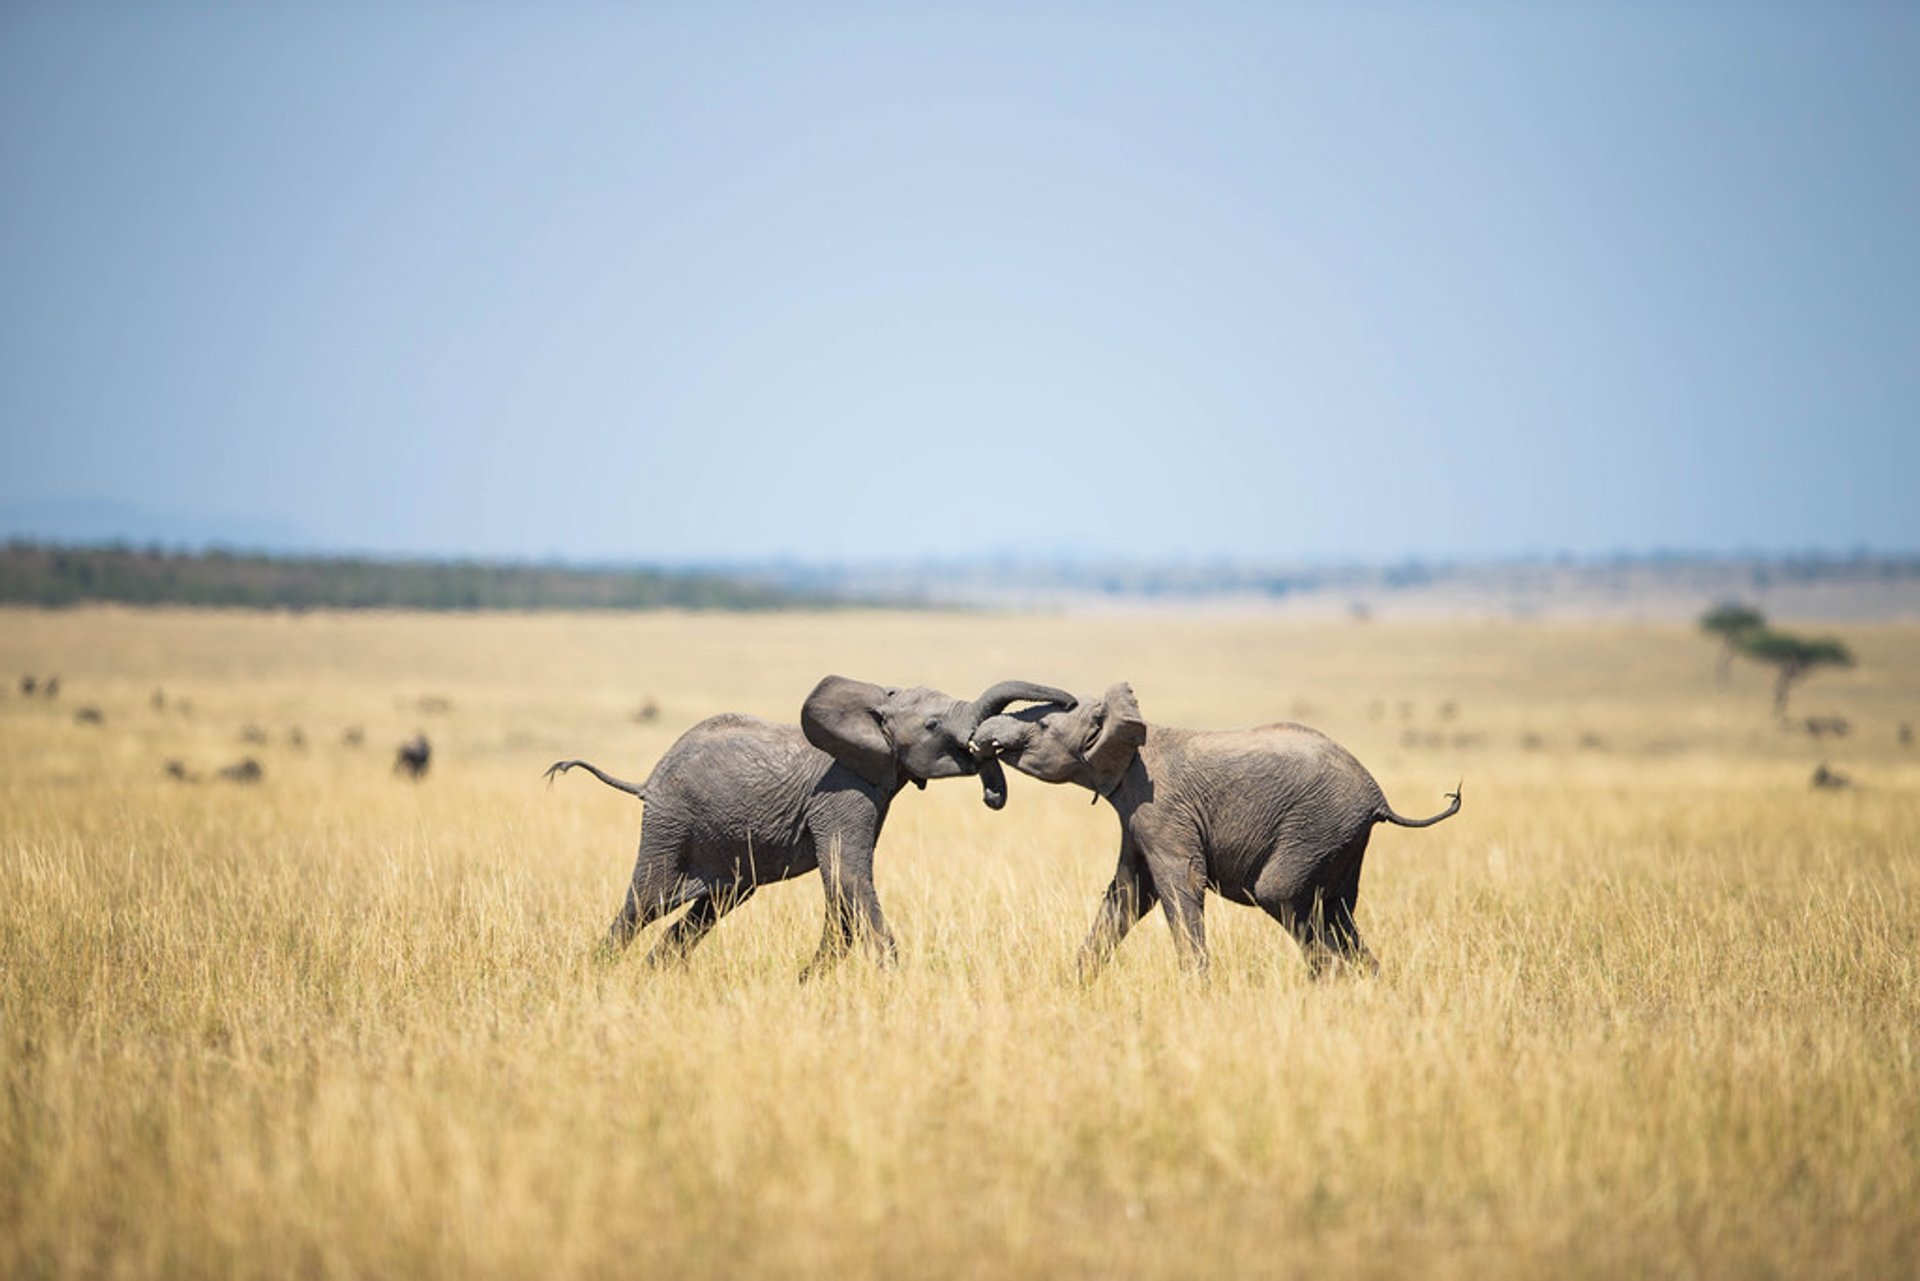 Two young elephants spar with each other on the savannah in the Mara Triangle, Masai Mara National Reserve, Kenya 2020